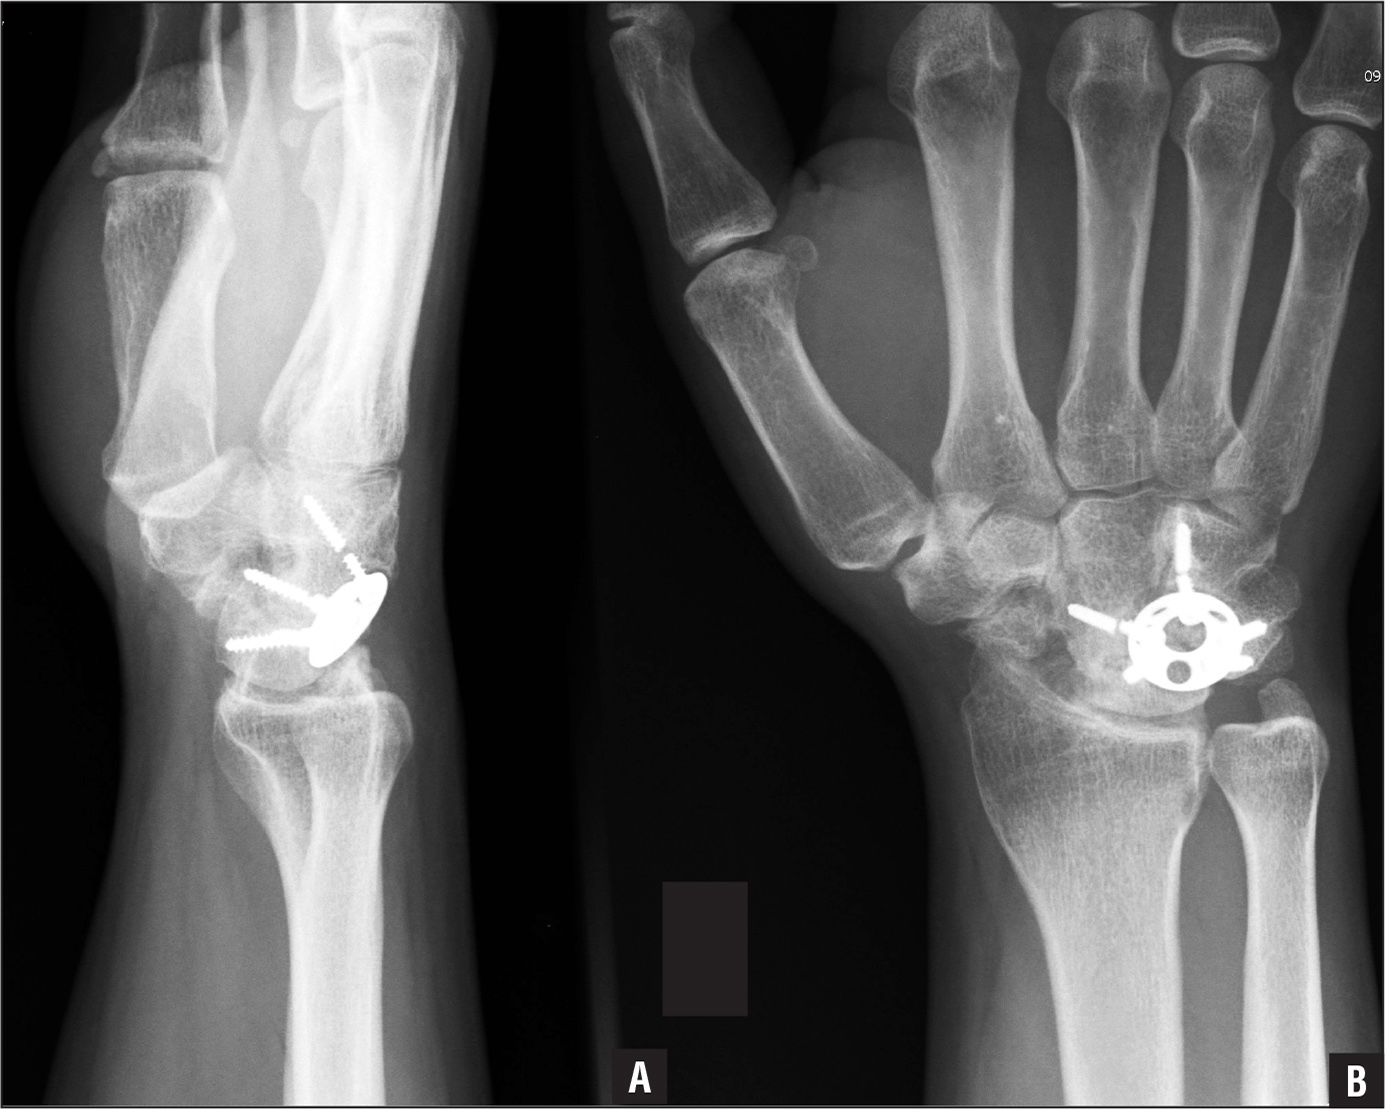 Postoperative lateral (A) and anteroposterior (B) radiographs showing breakage of the circular plate screw.